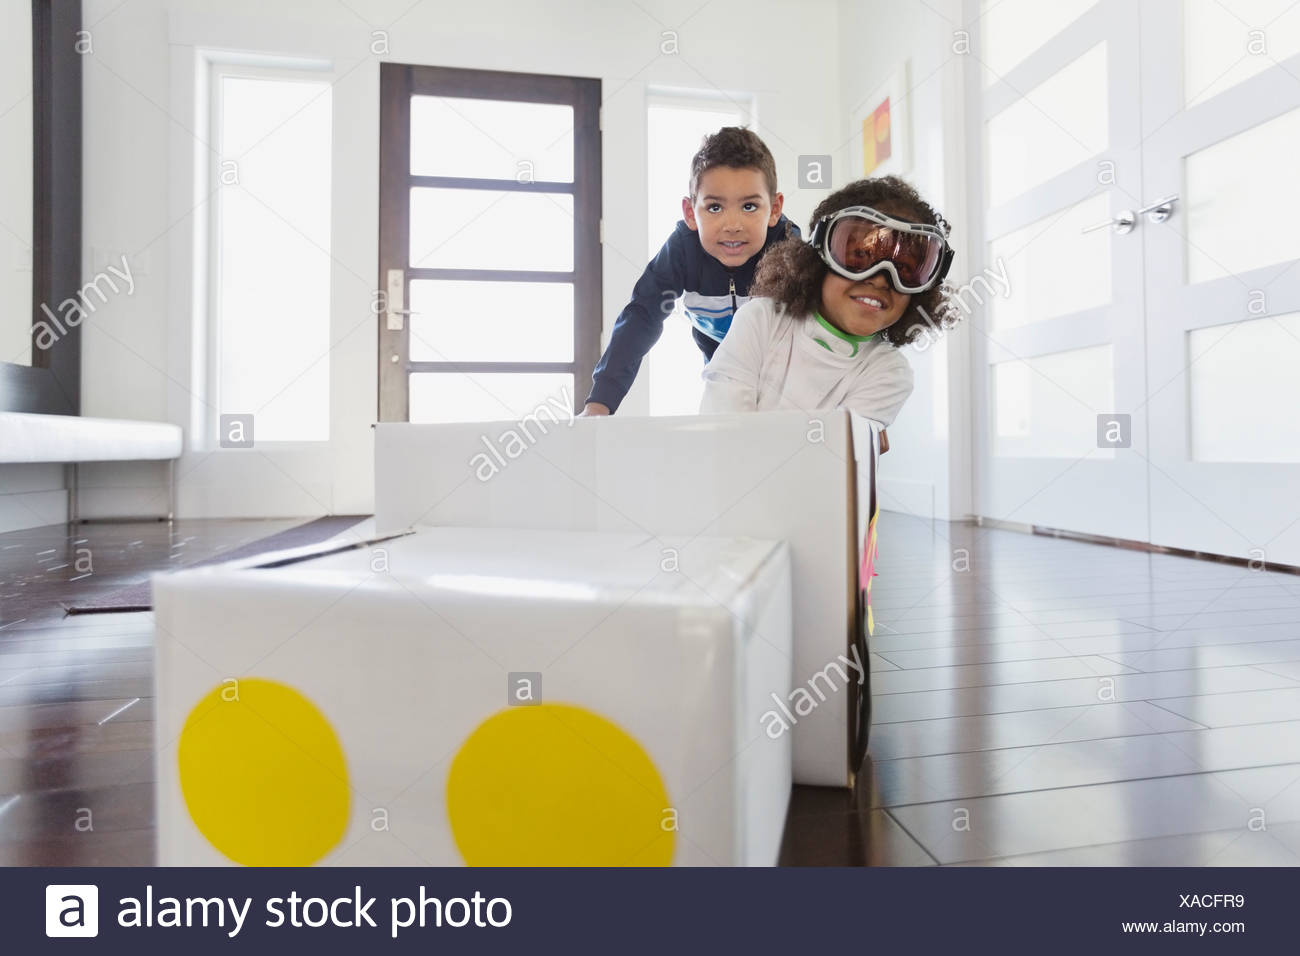 Boy with friend pretending to be race car driver at home - Stock Image